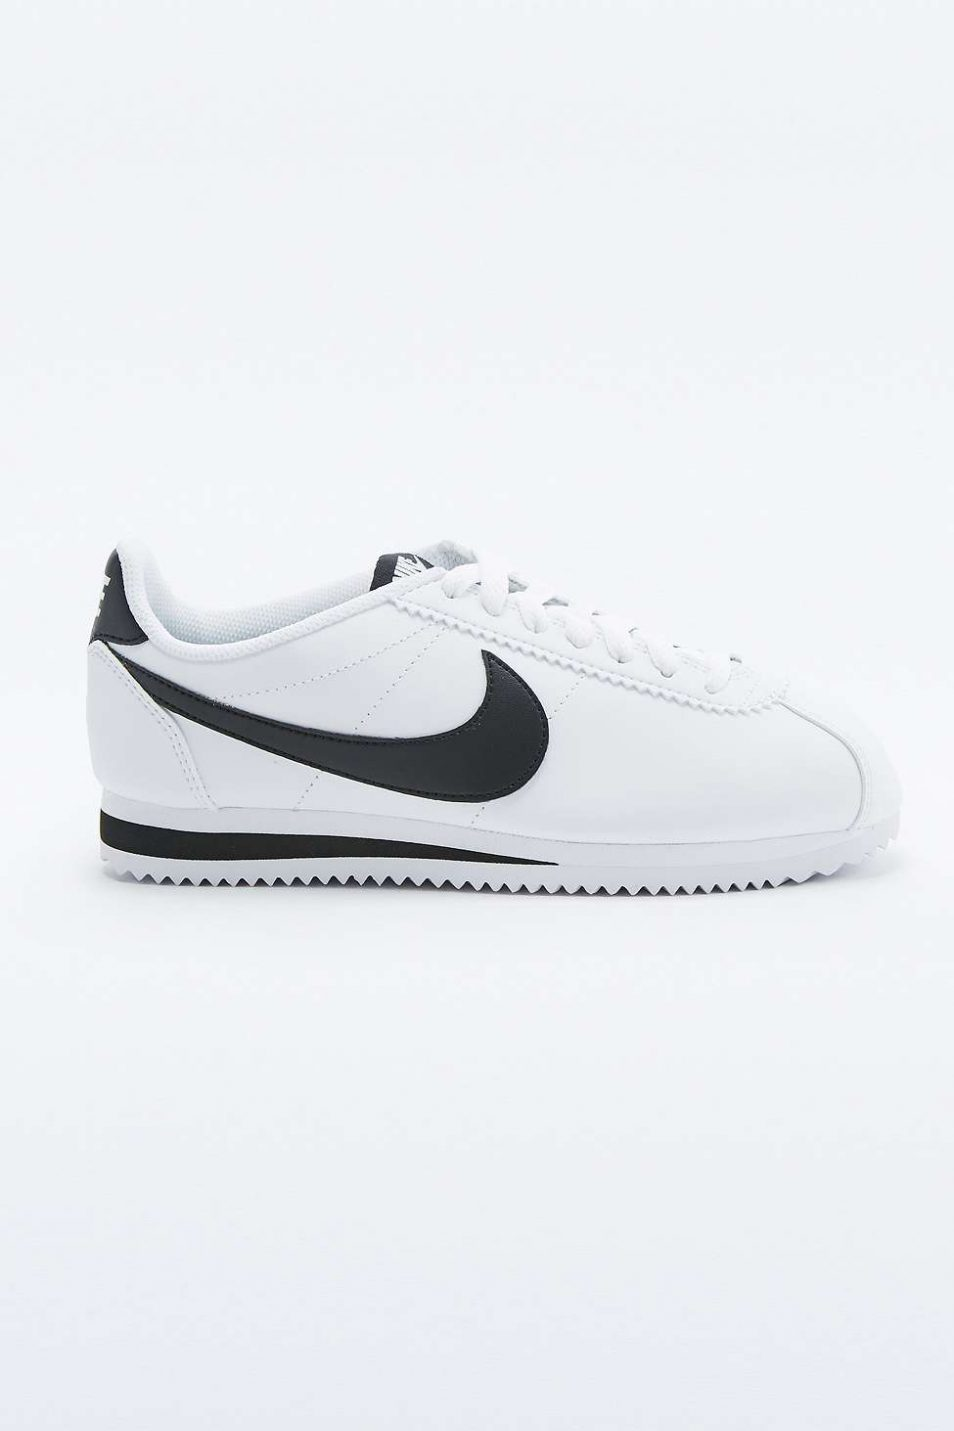 Nike Classic Cortez White Leather Trainers 2